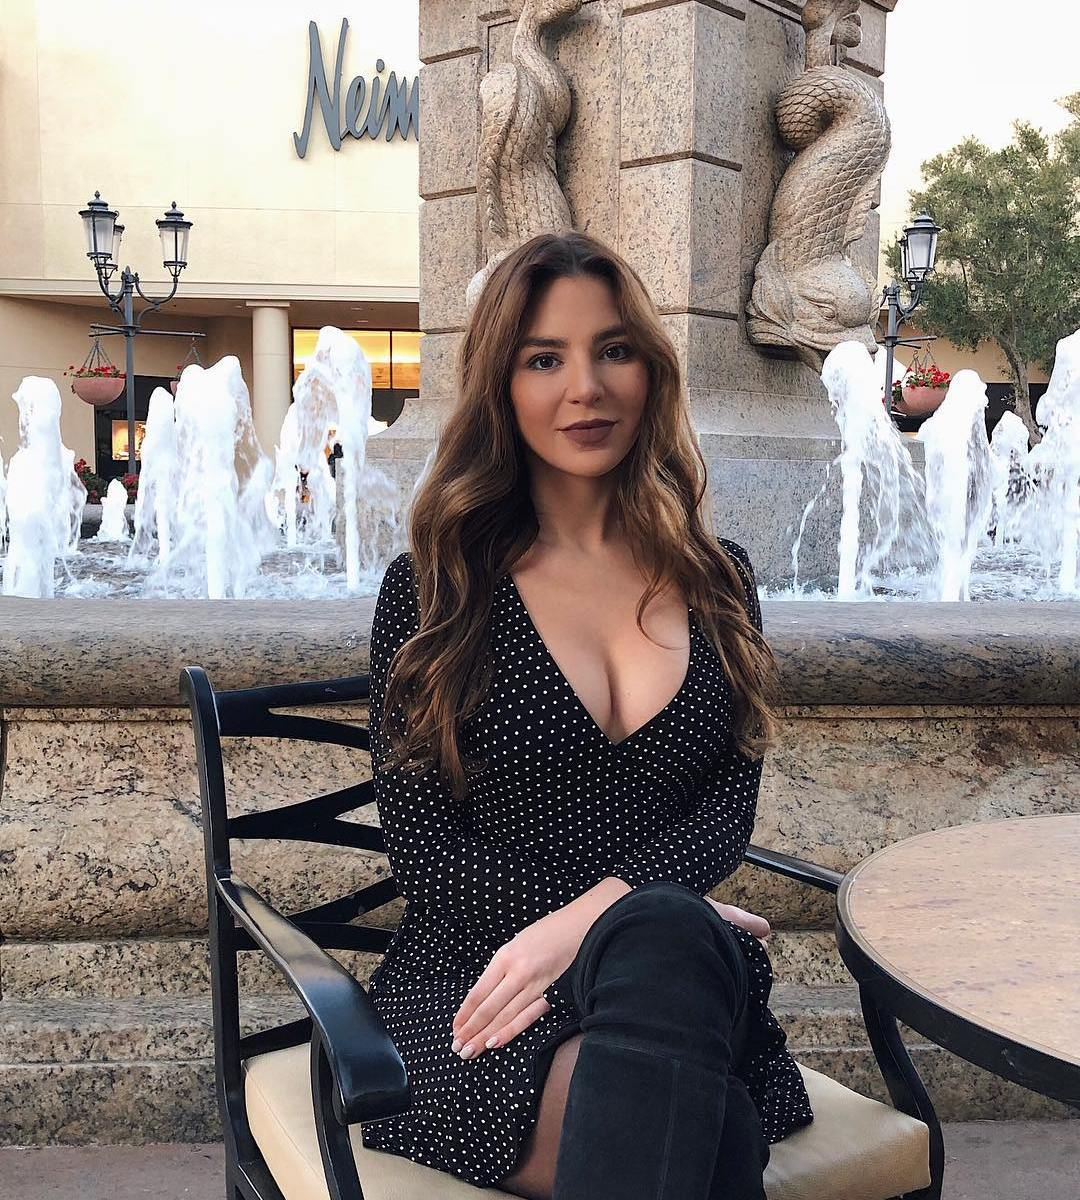 Anfisa Naked 90 day fiancè instagram accounts — what they post on social